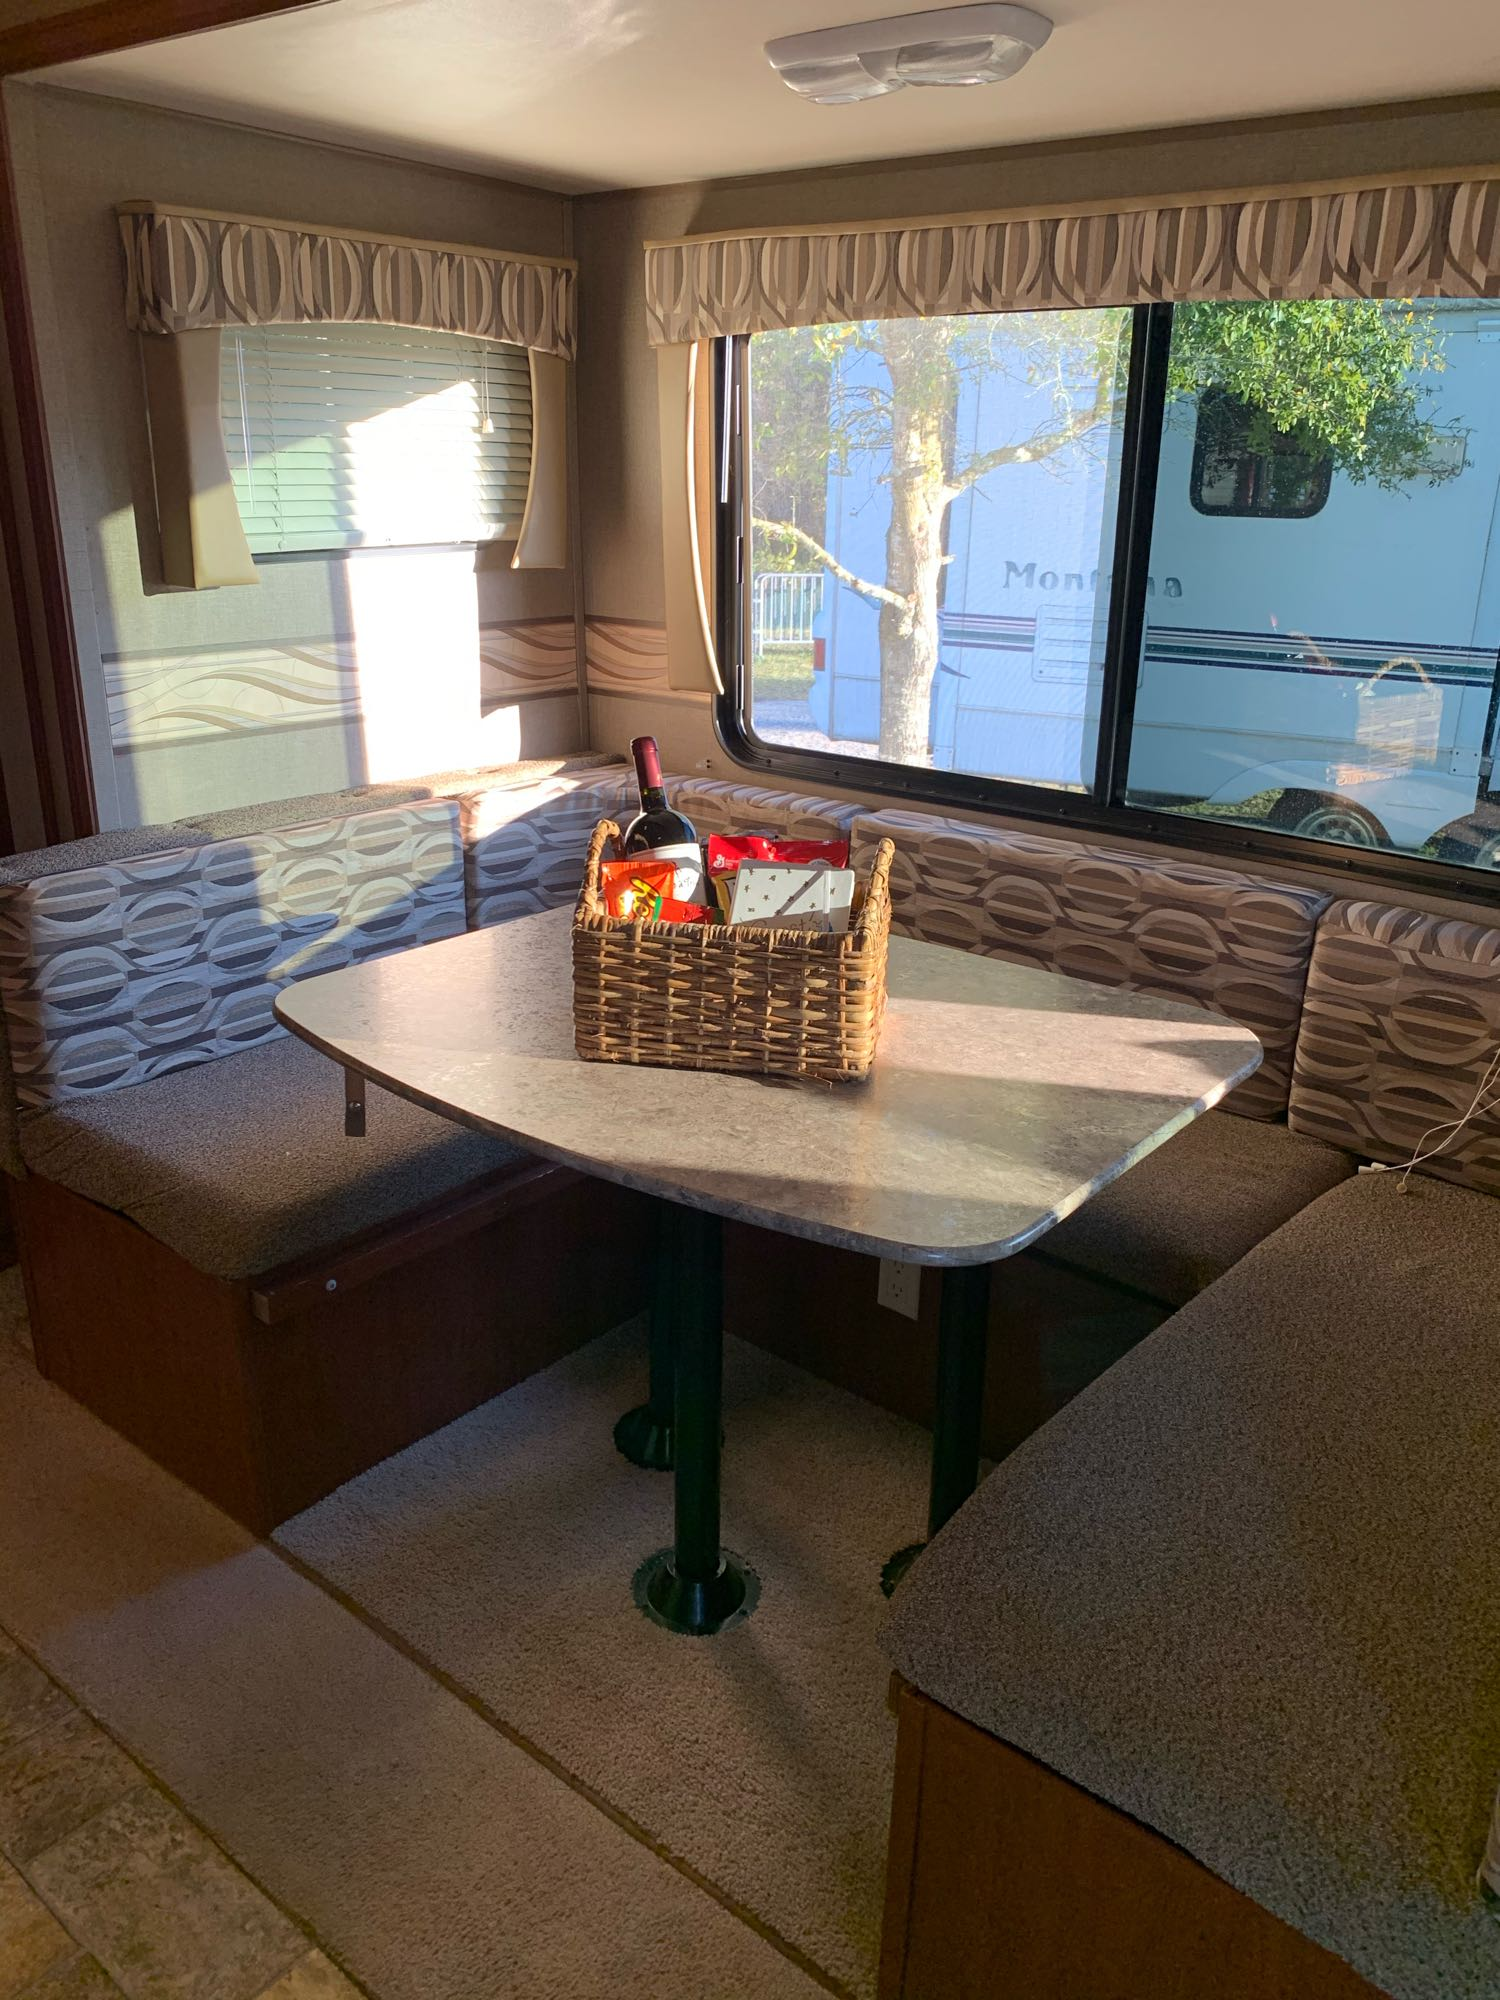 For each person, group or family who rents from us we try to customize a Welcome basket and leave some special goodies, Wine for Mom and snacks for everyone else sometimes a Smore's Kit my favorite.  This dinette seats 7 comfortably and makes into a full size bed for 2 adults.. Palomino Canyon Cat 2015